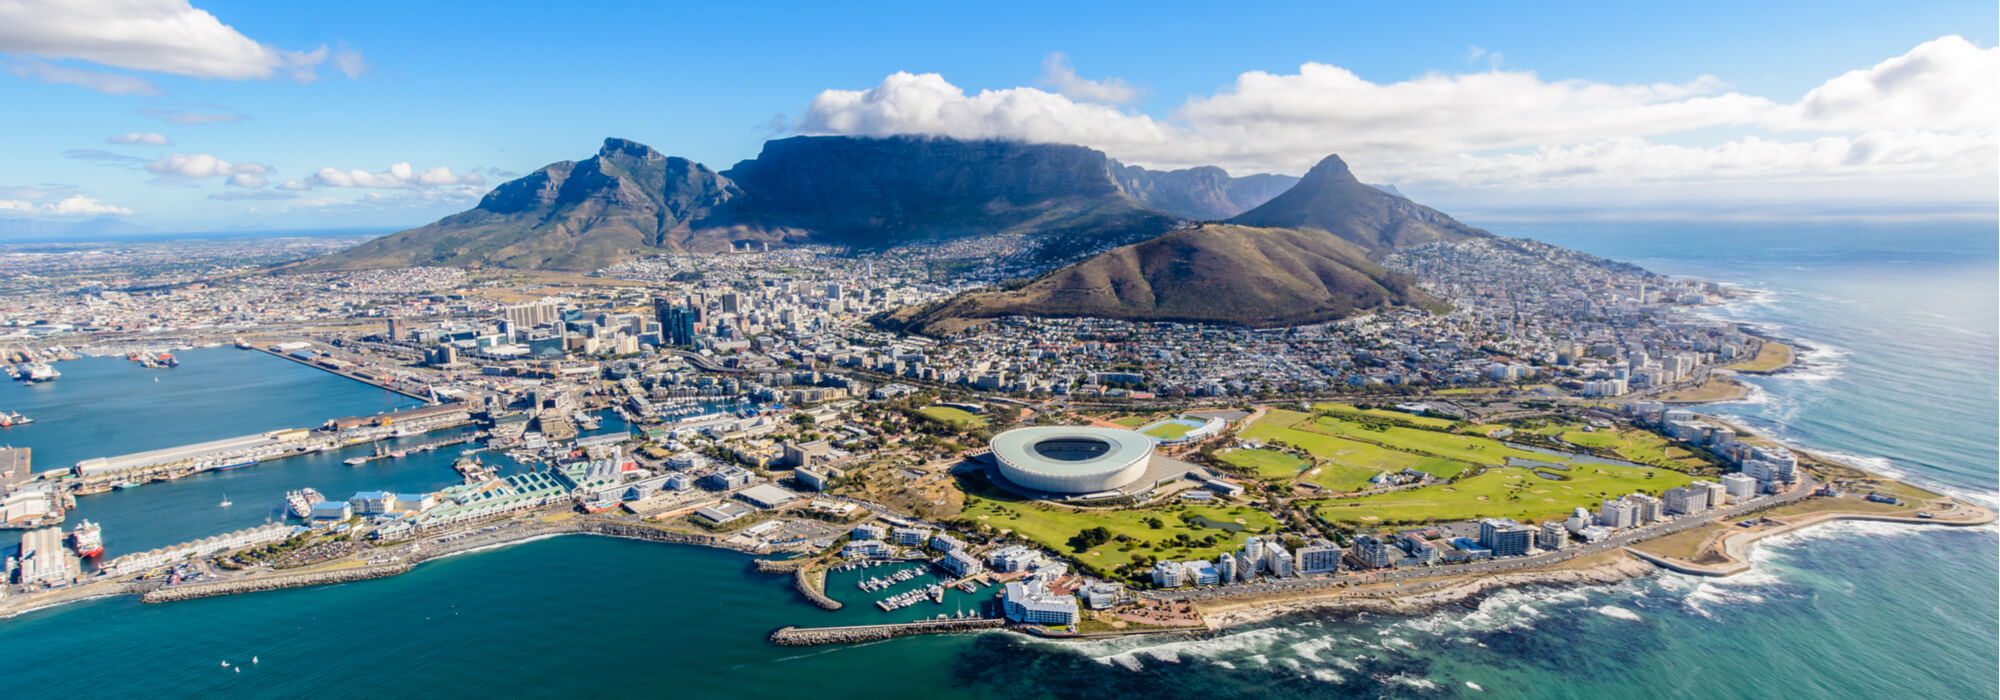 Aerial-view-of-Cape-Town-South-Africa-Header.jpg